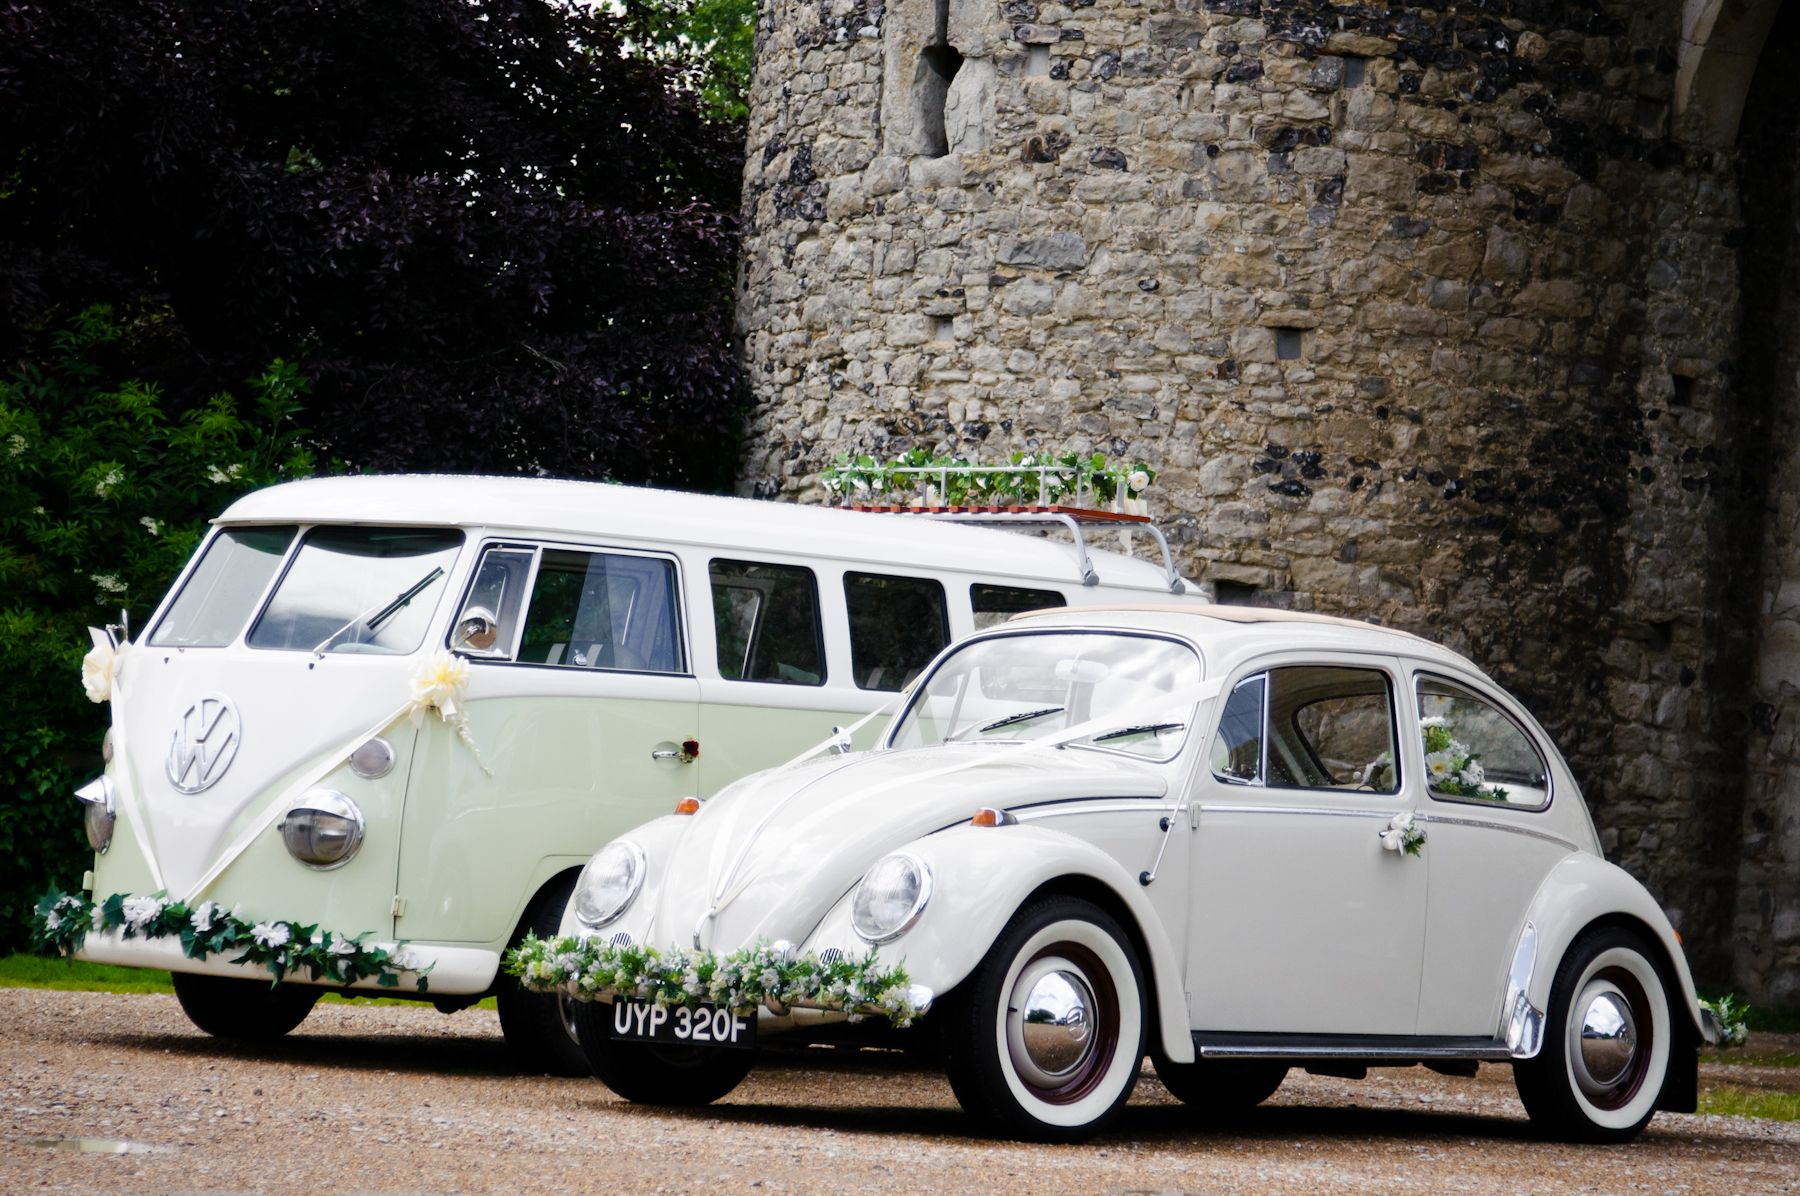 VW Volkswagen wedding Beetle car hire | vintage wedding transport ...